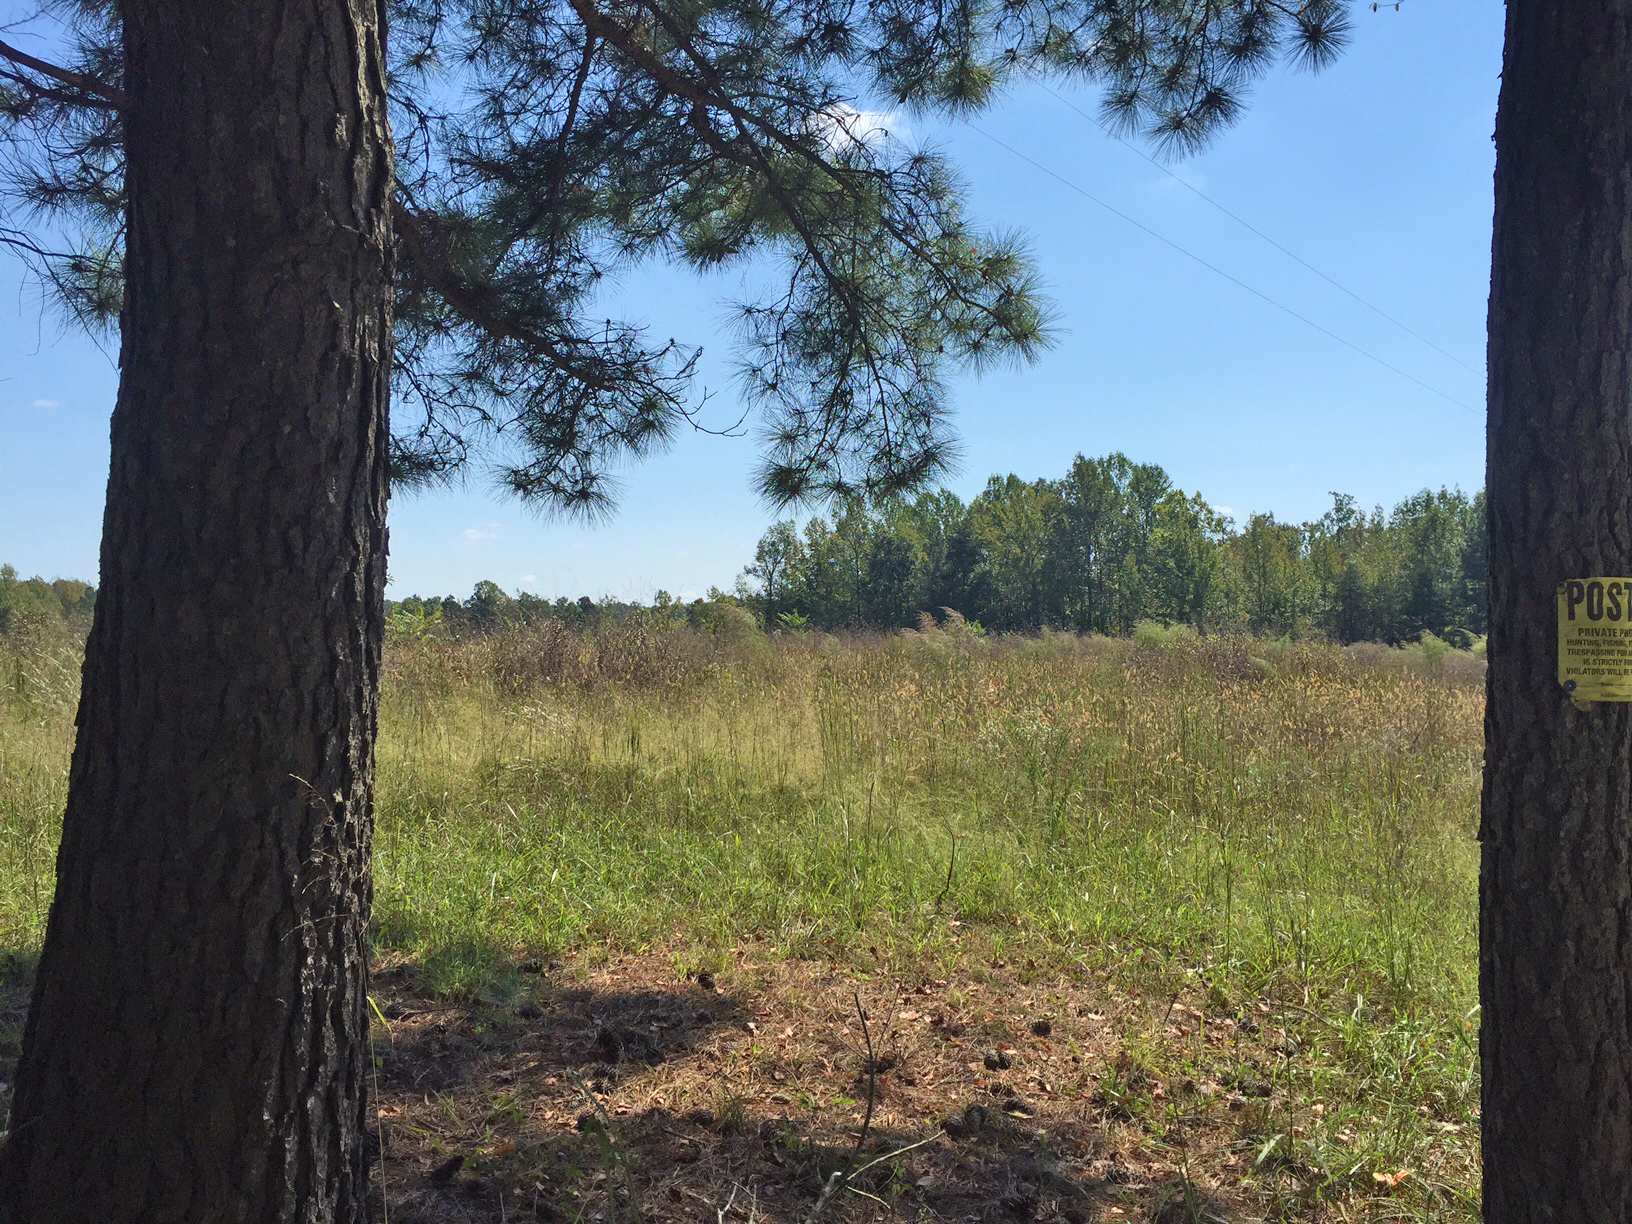 Land for Sale in Meherrin, VA – Mountain Creek Rd